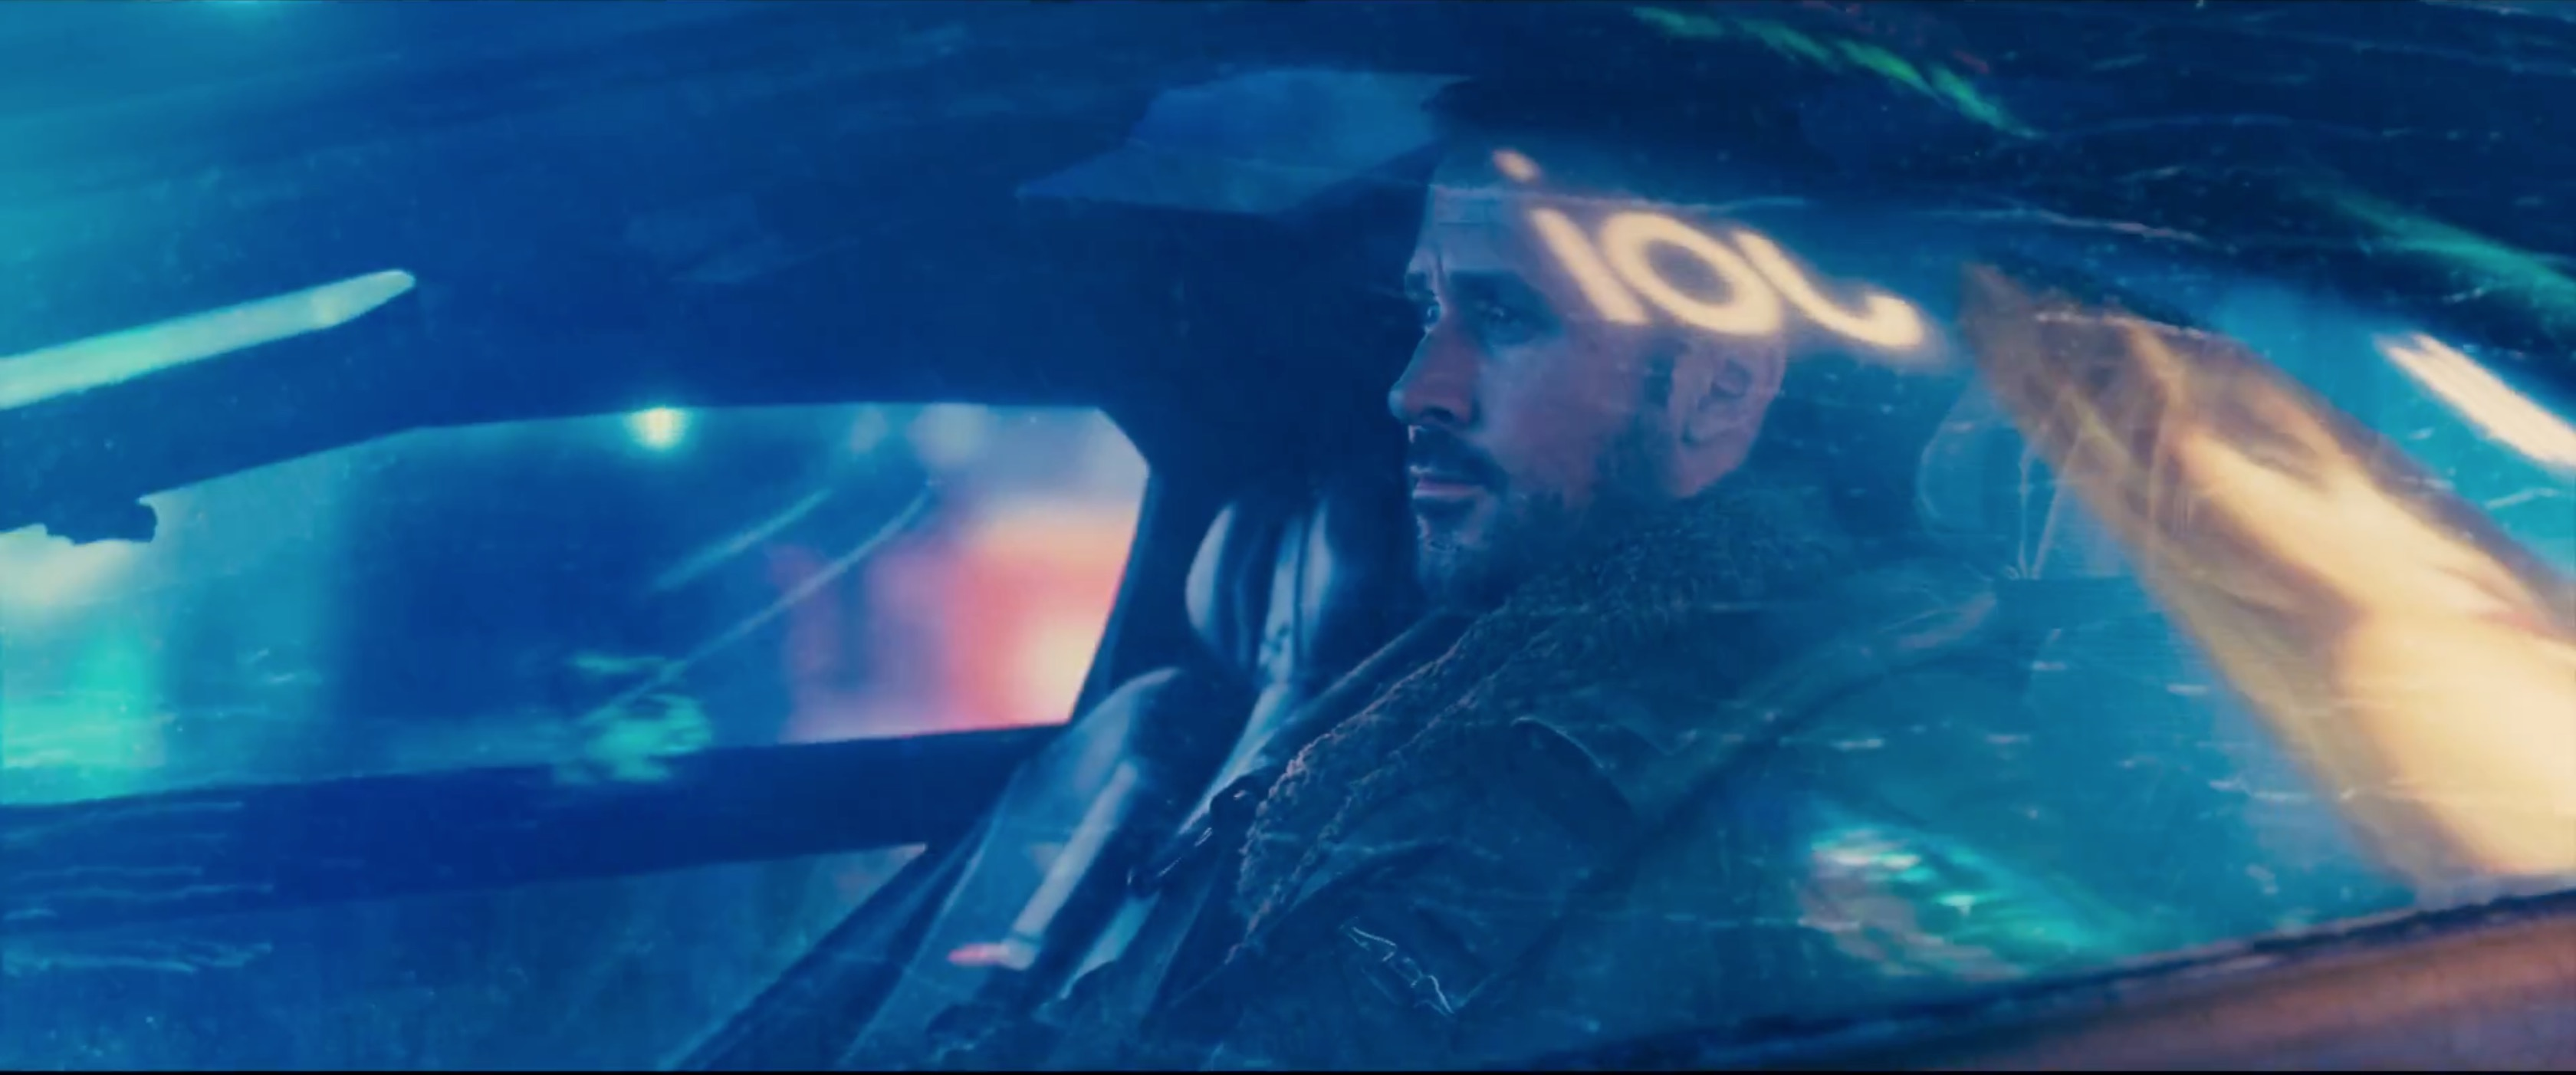 Blade Runner 2049 Movie Still 468402